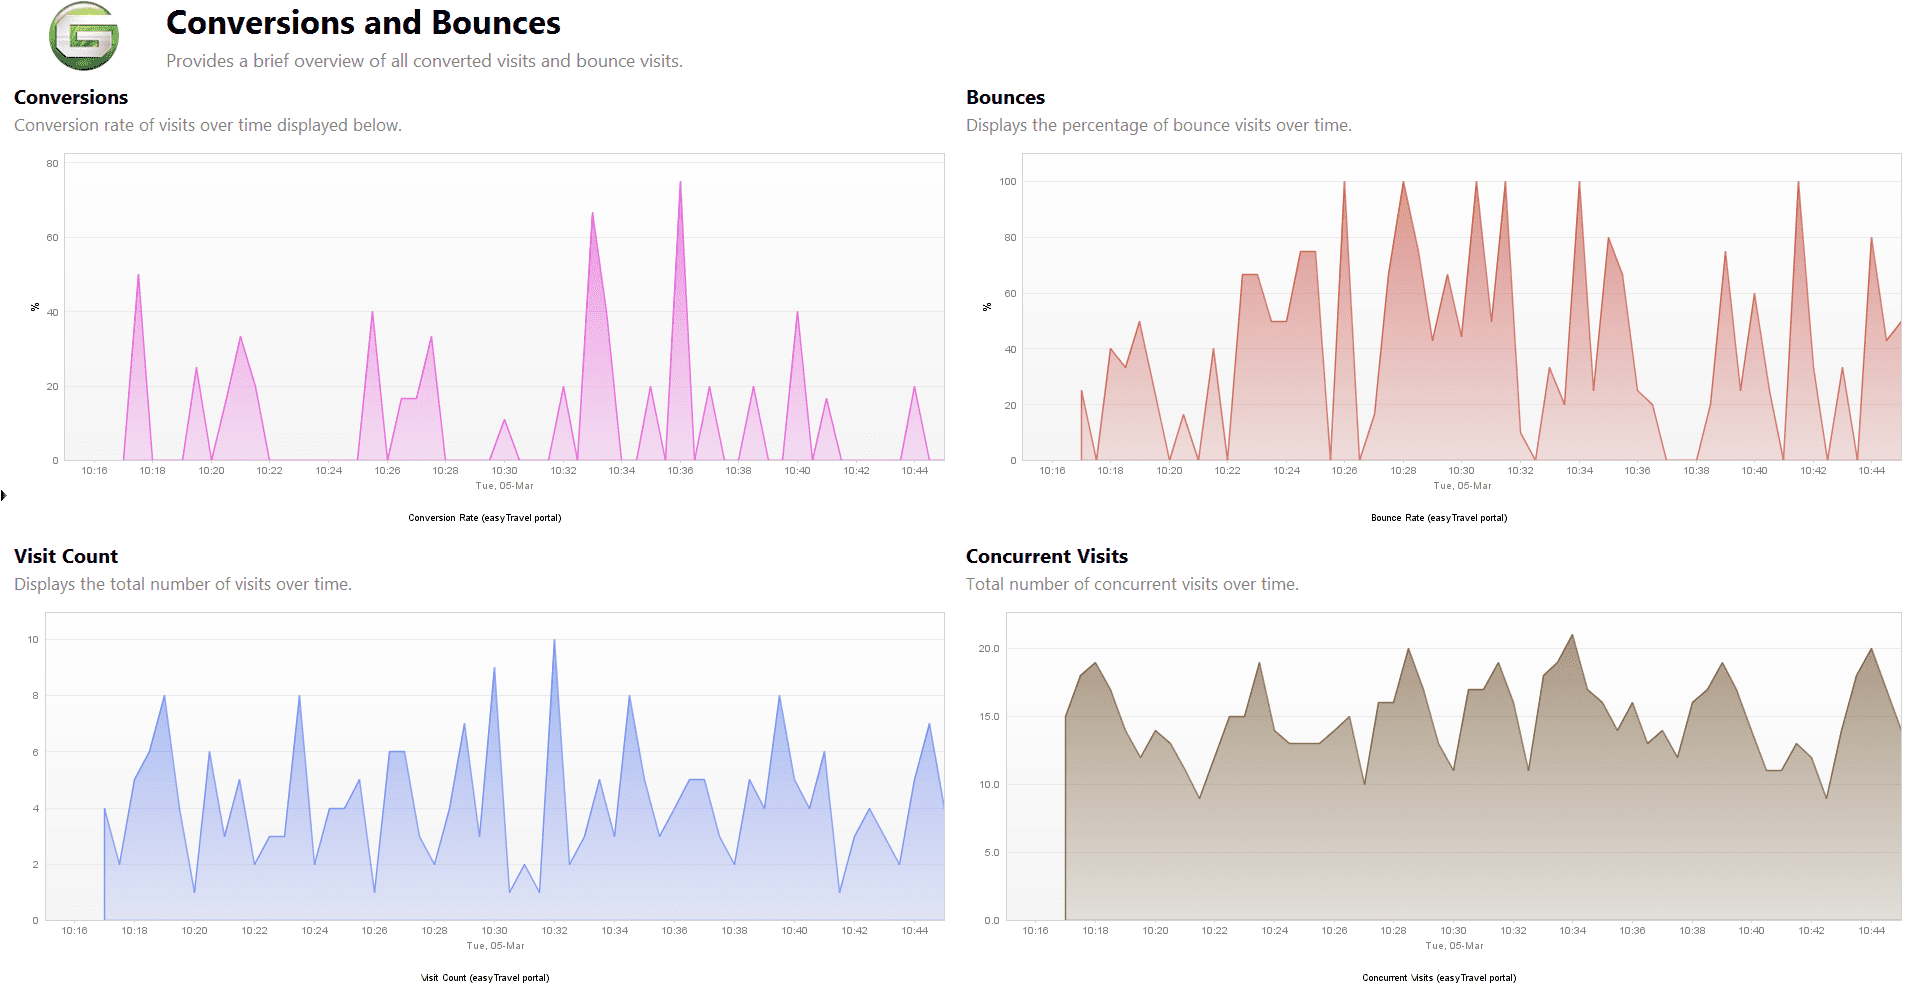 Conversions and Bounces dashboard